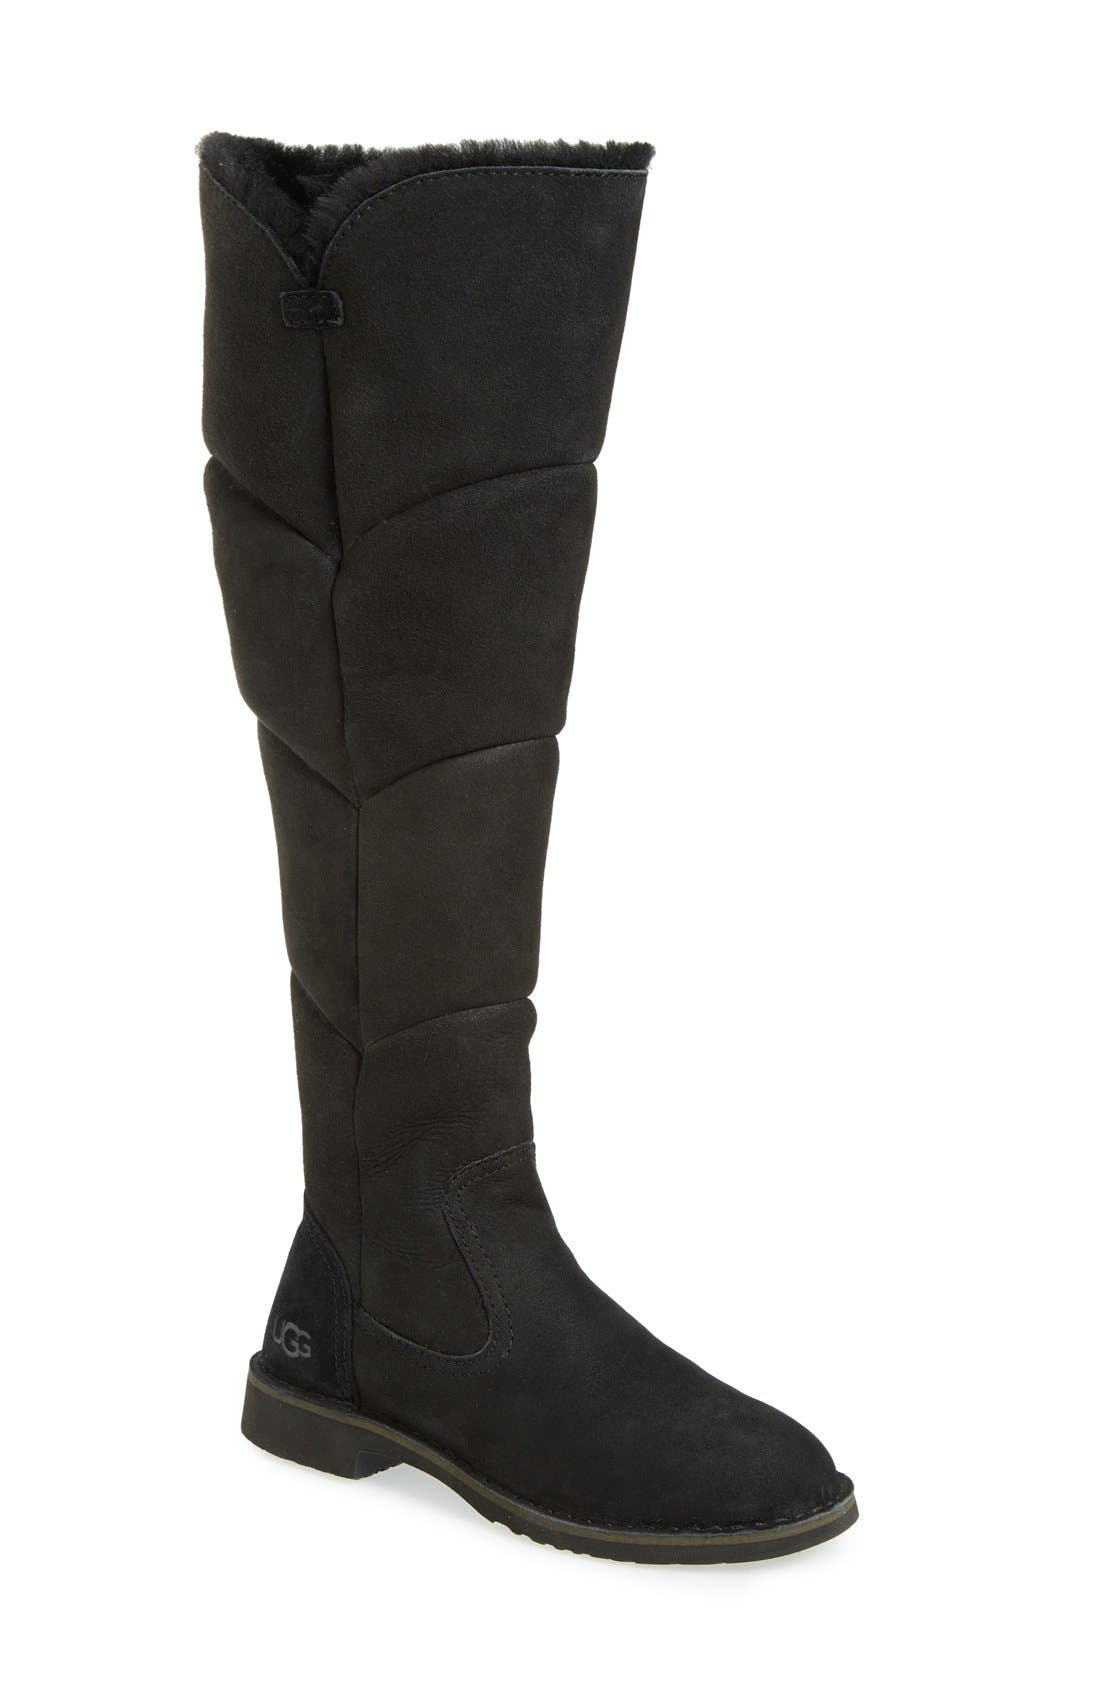 Main Image - UGG® Sibley Over the Knee Water Resistant Boot (Women)